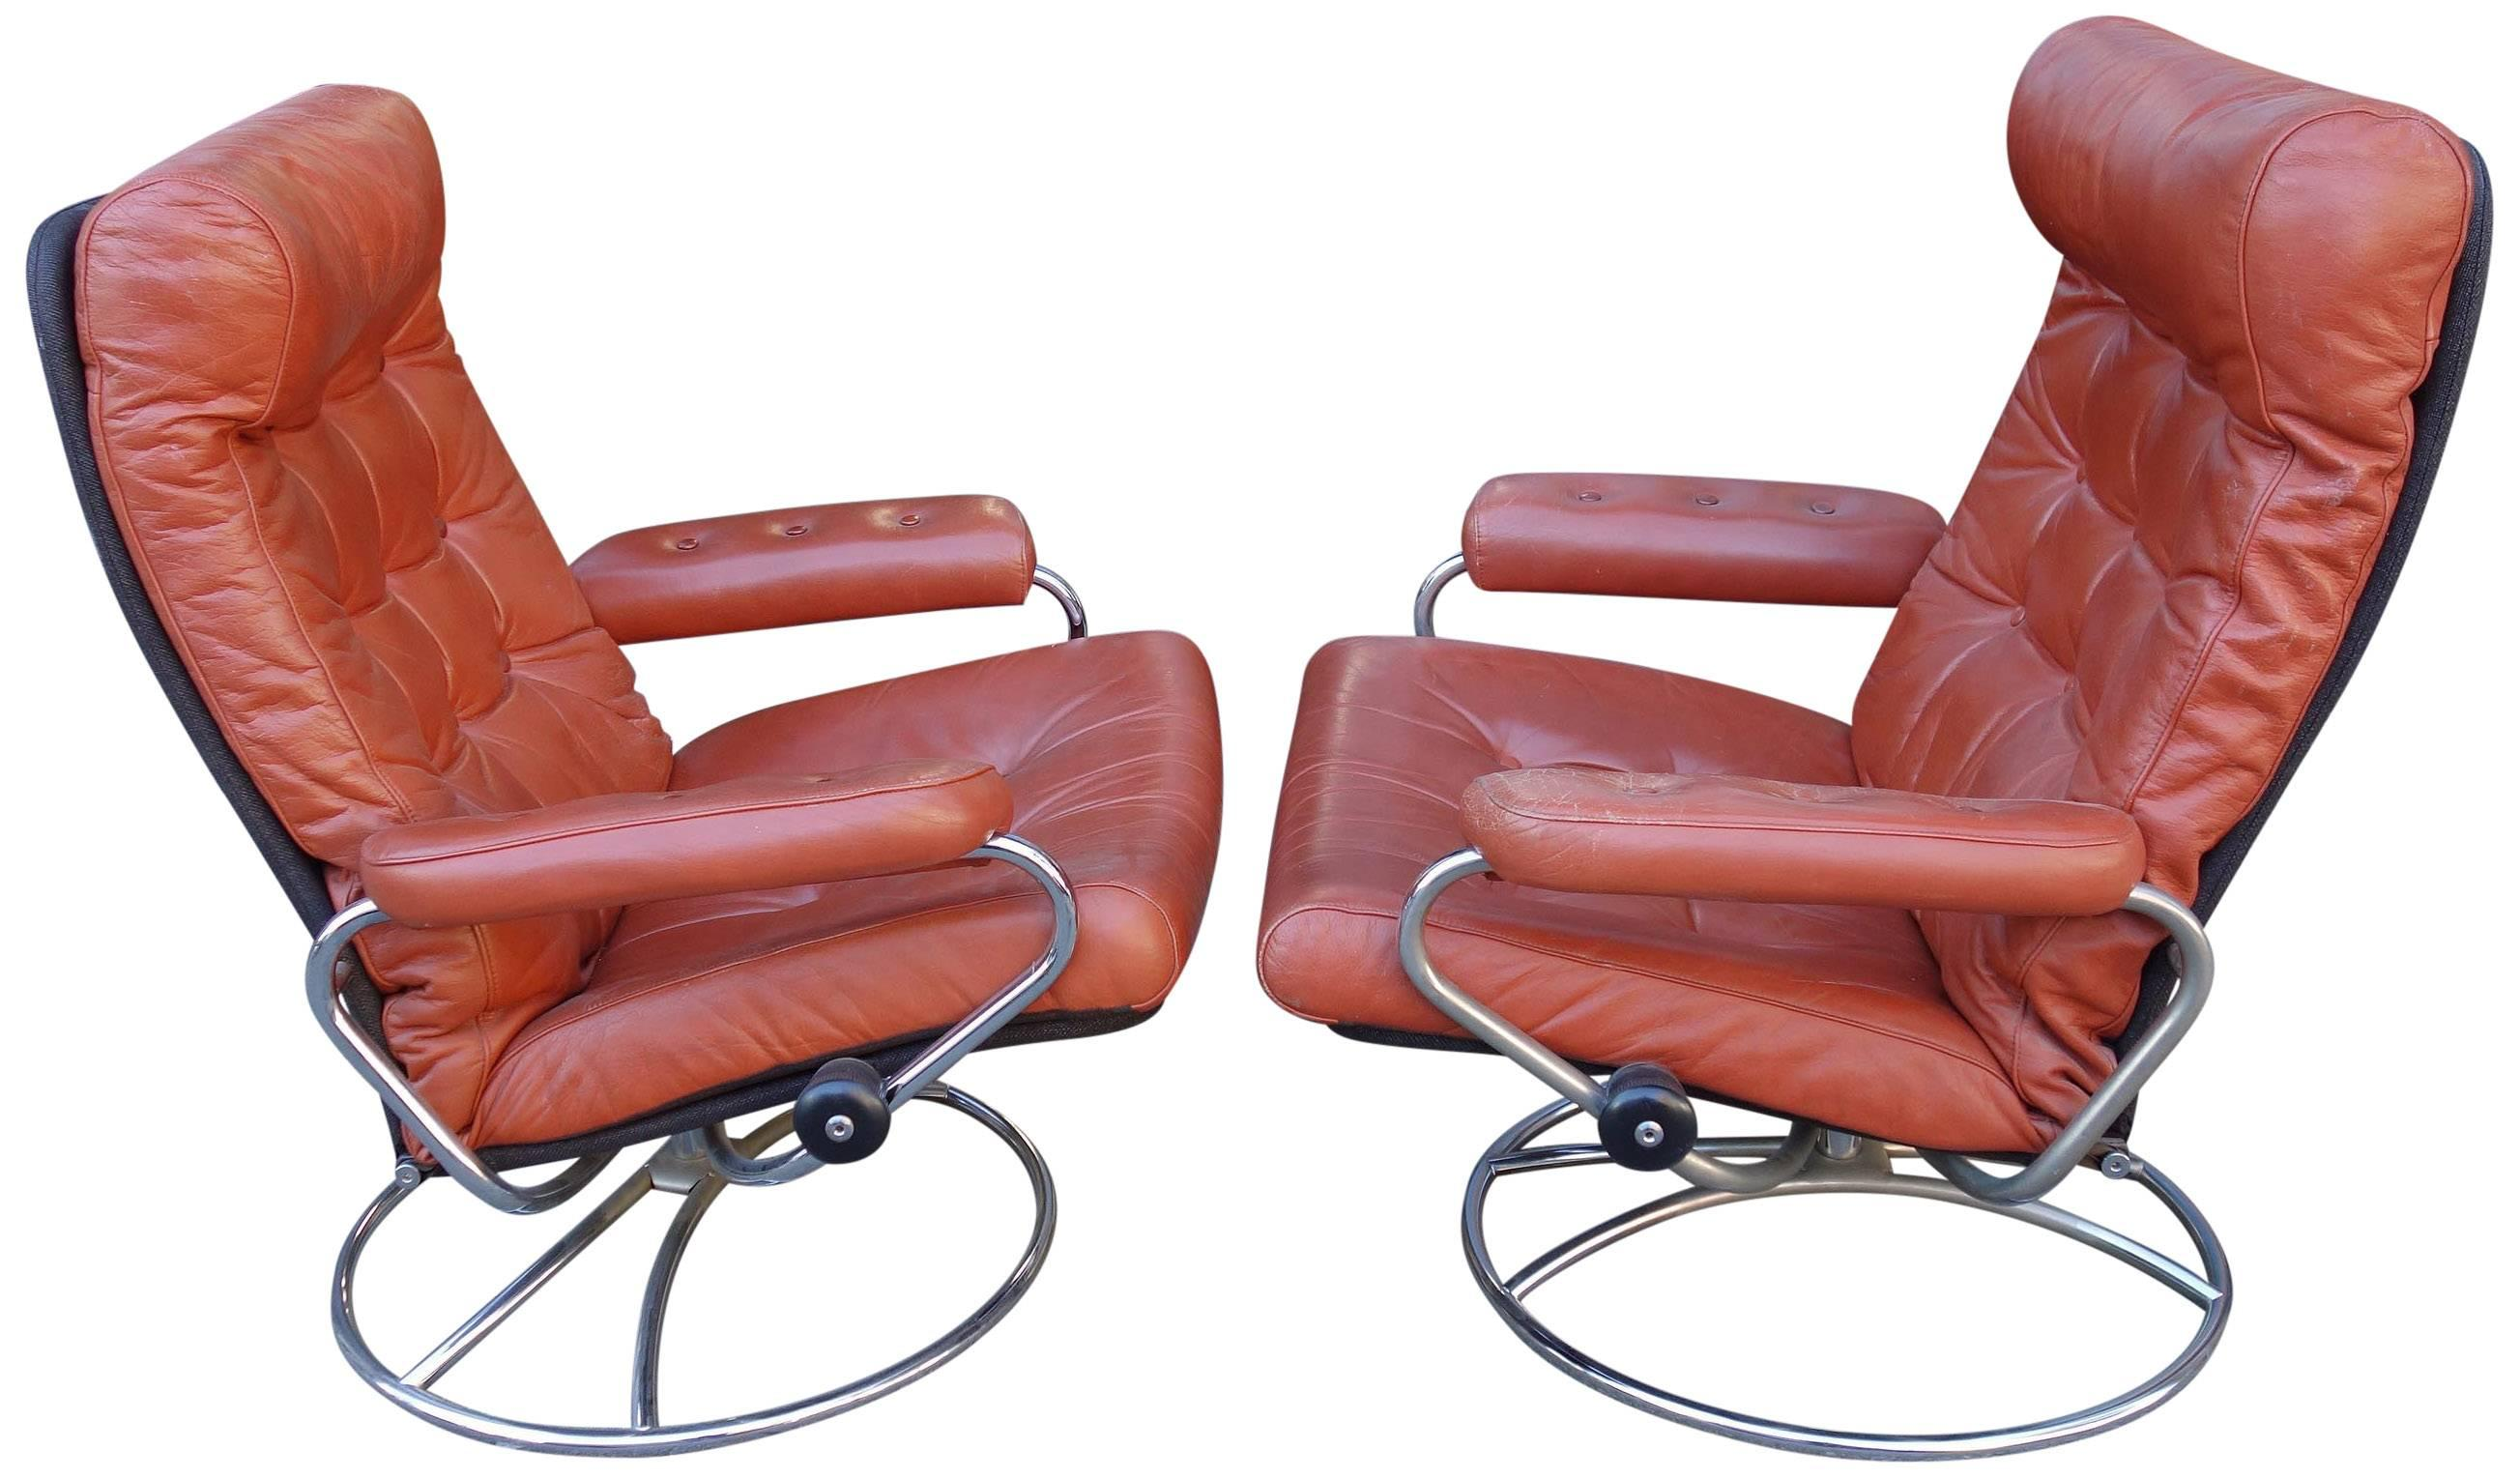 Norwegian Midcentury Reclining Stress Less Lounge Chairs And Ottoman By  Ekornes For Sale